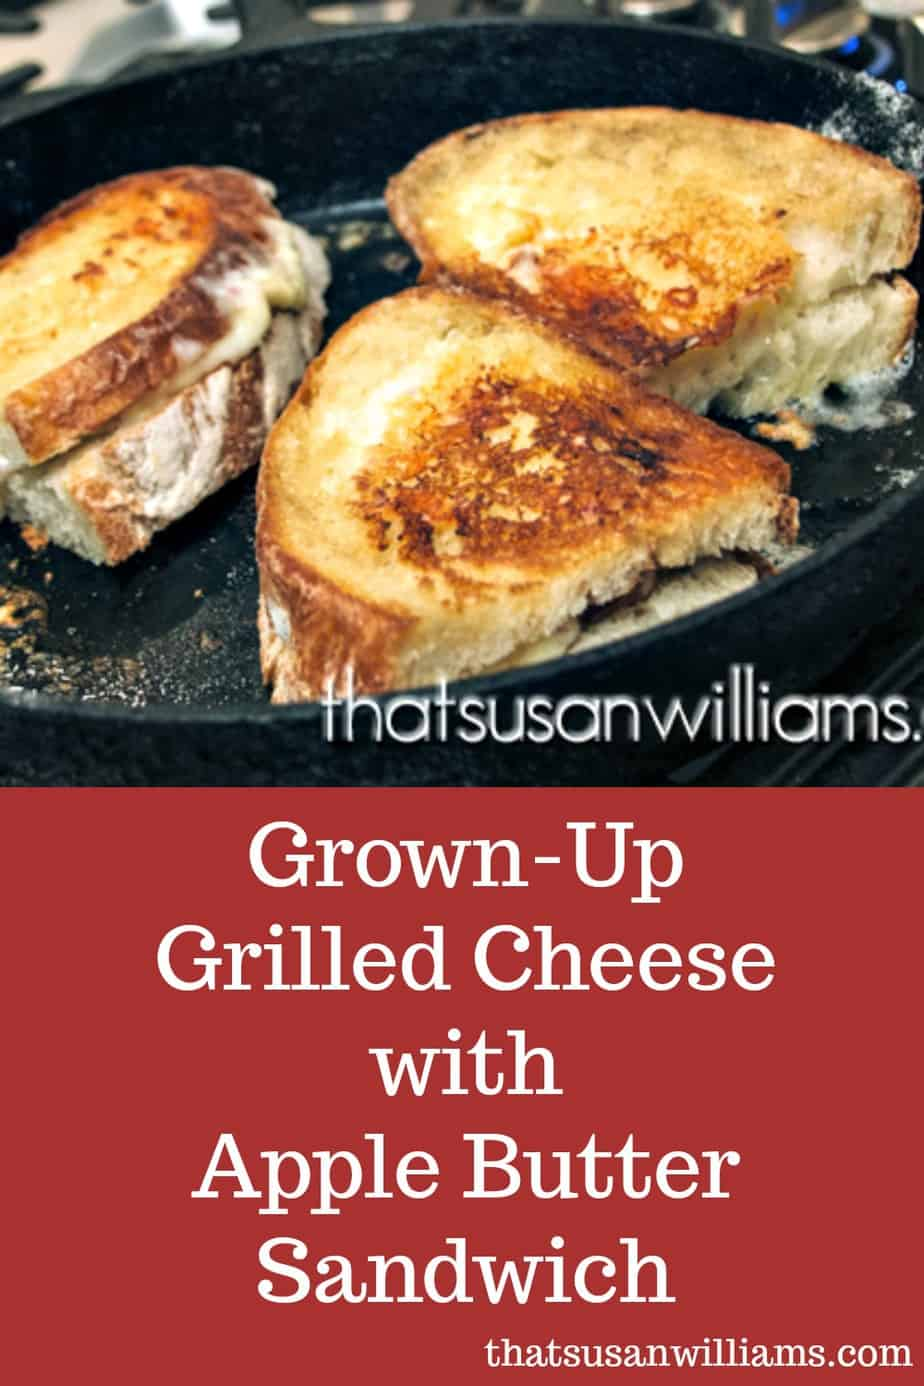 Best Gourmet Grown-Up Grilled Cheese Sandwich with Apple Butter #grilledcheese #gourmet #sandwich